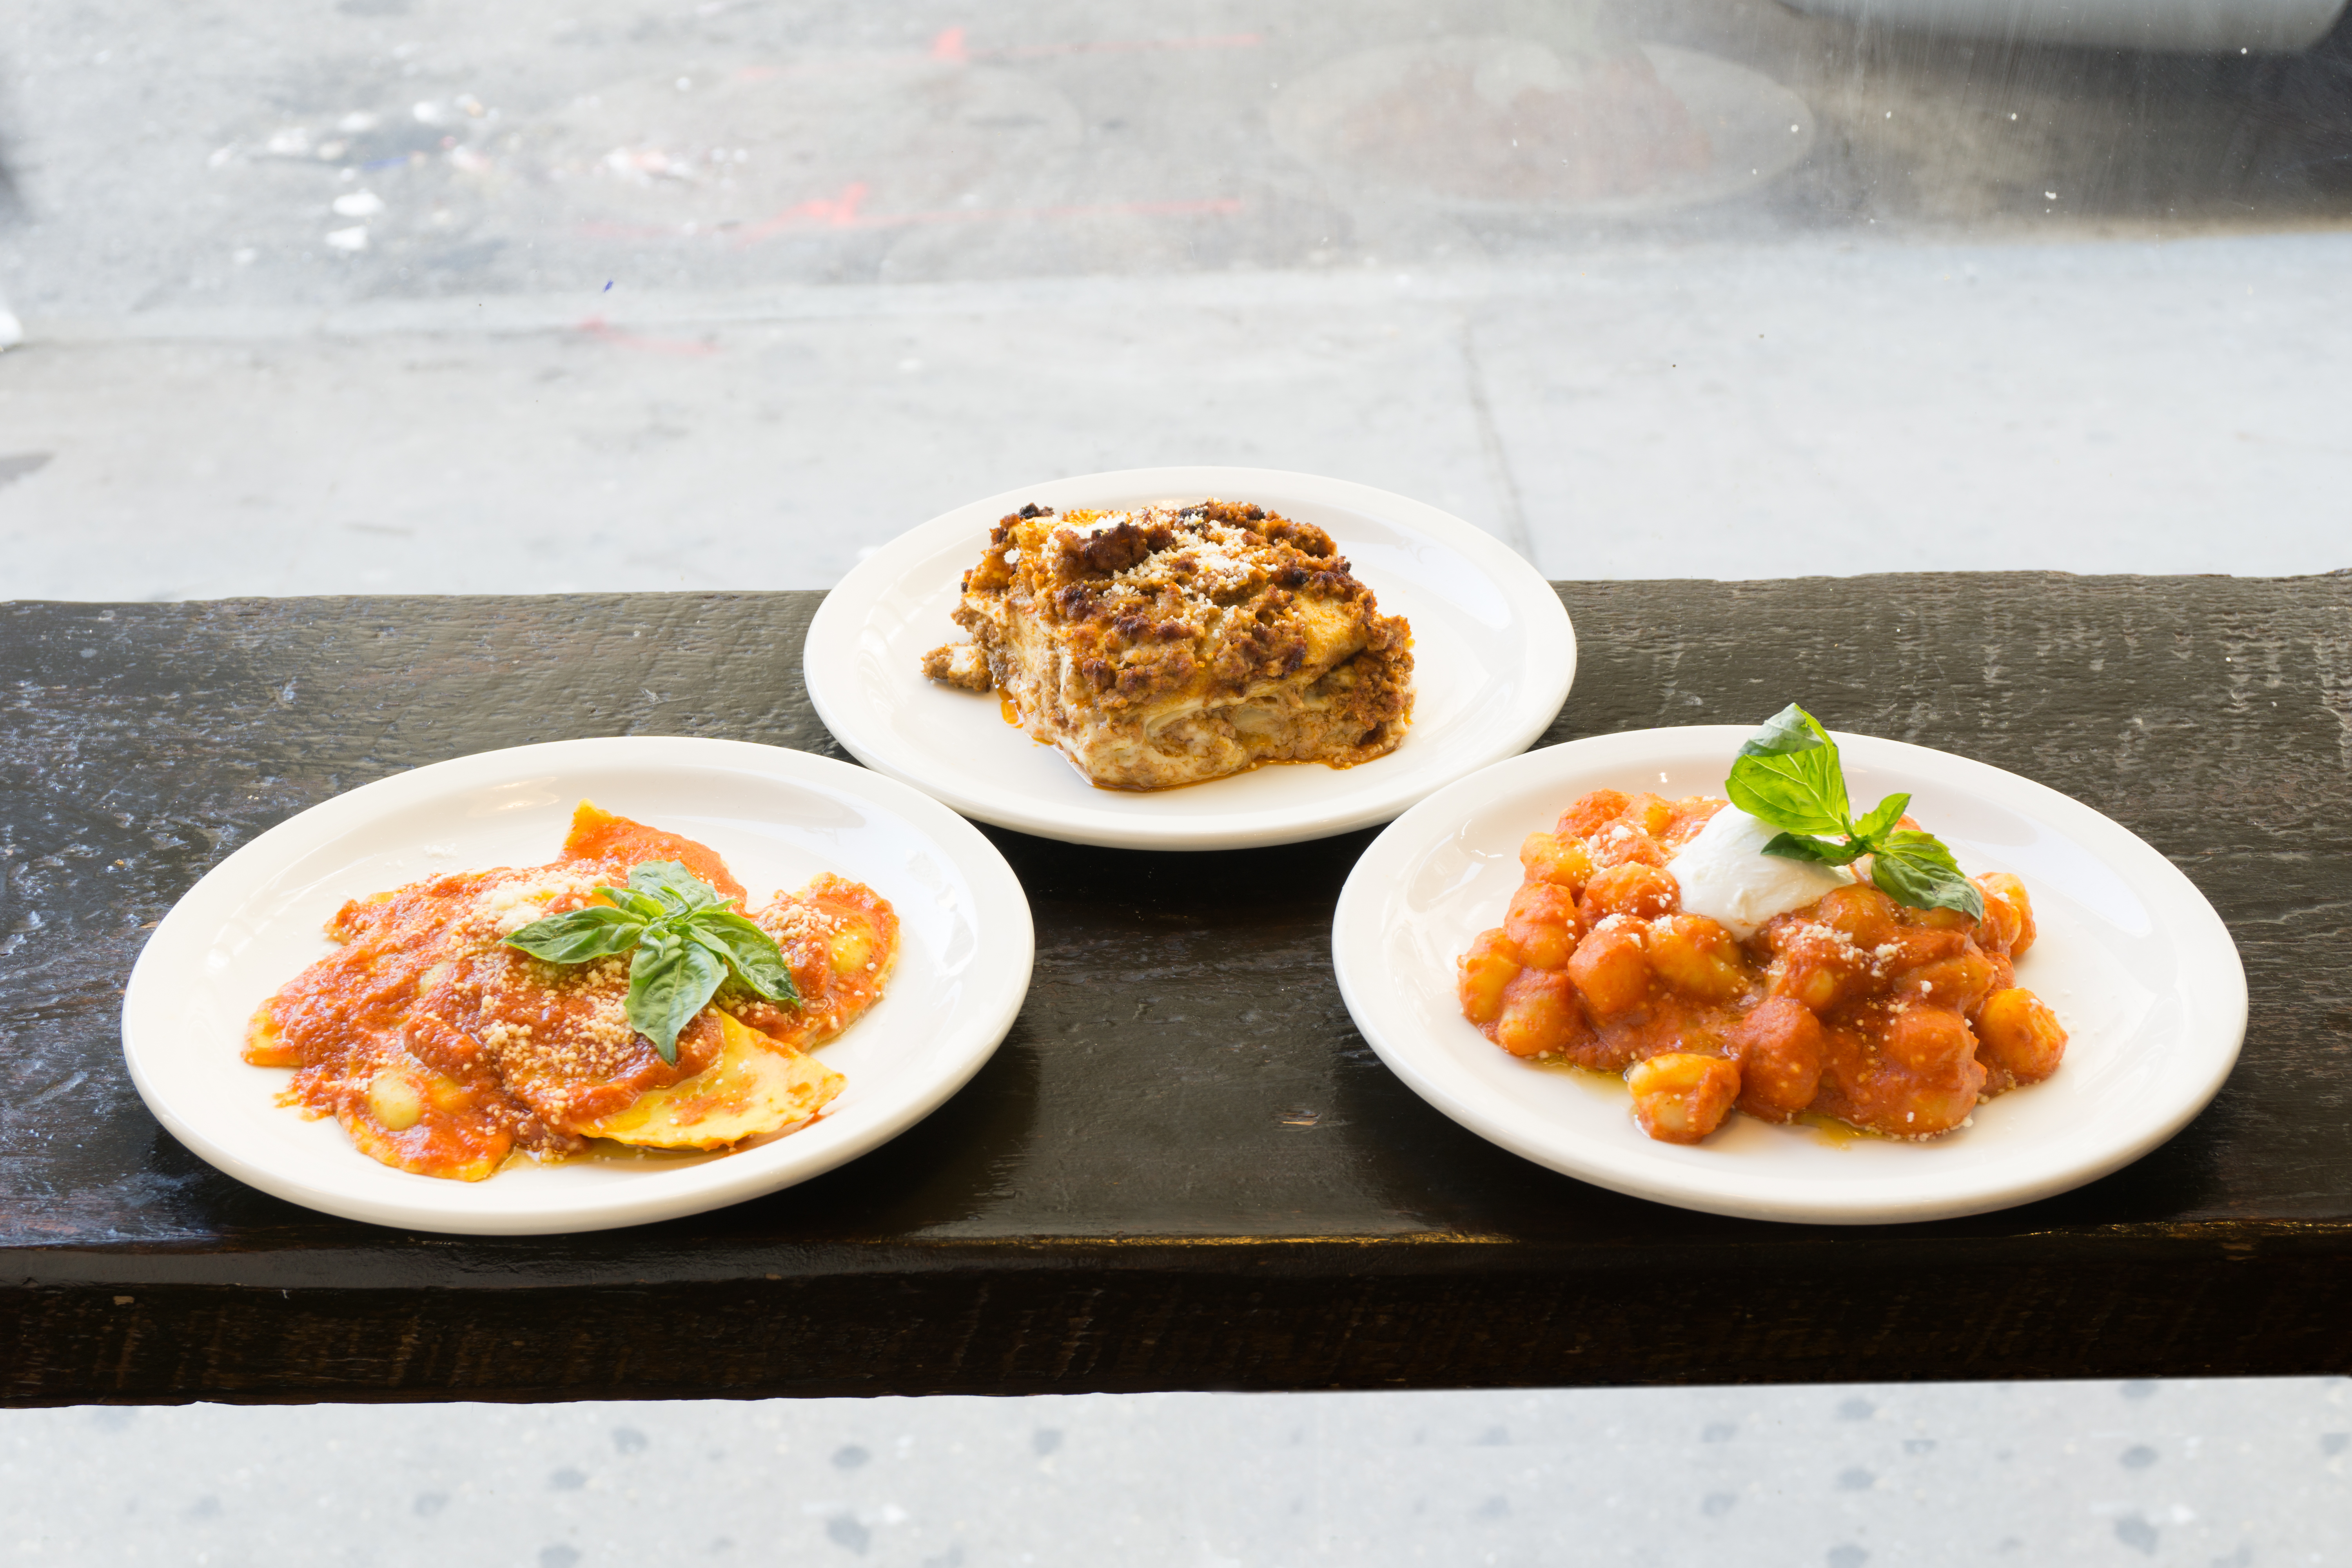 These ten restaurants deliver the best Italian catering to offices in NYC.